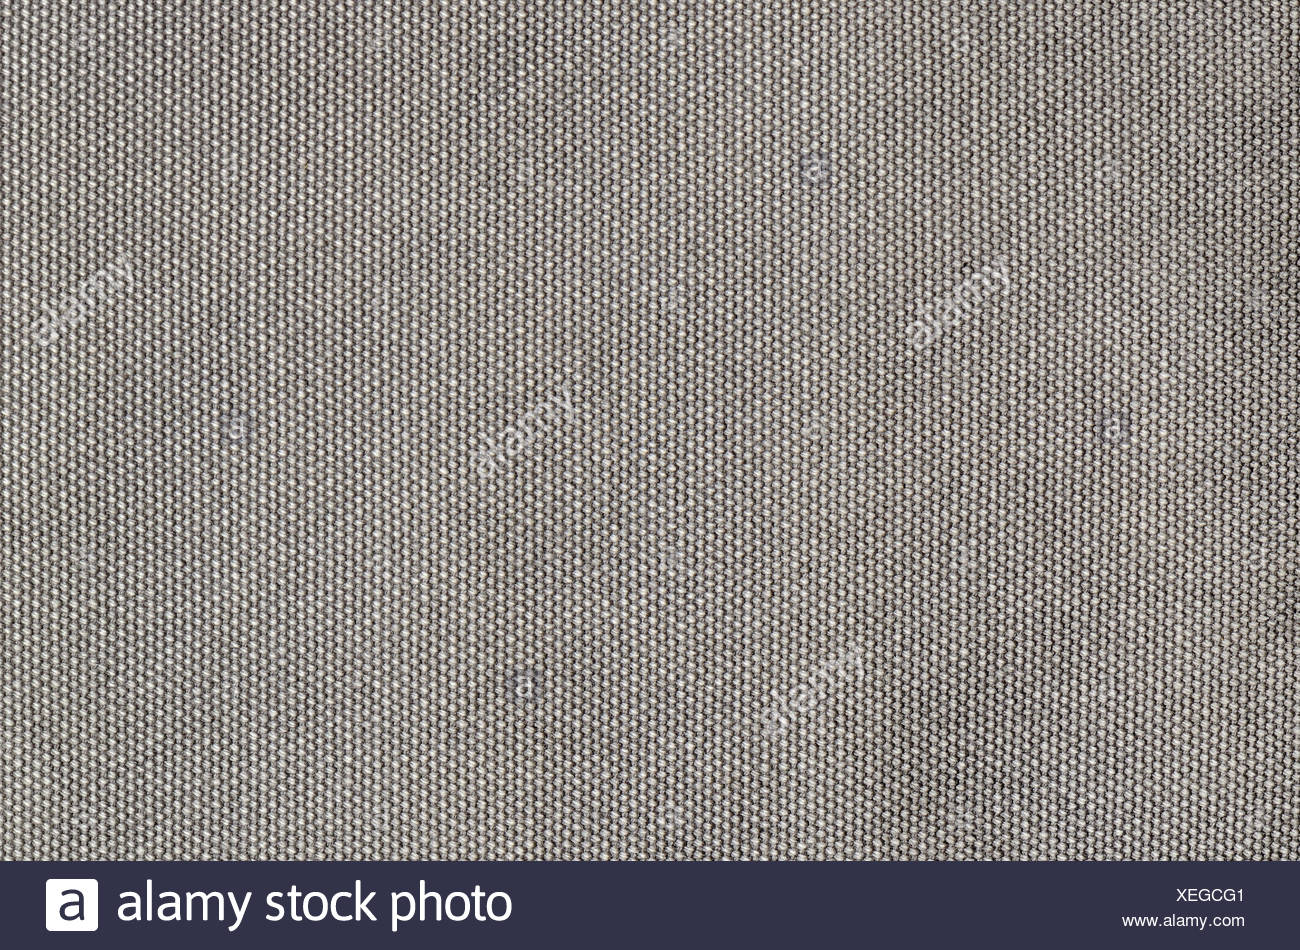 close up gray grained cotton background - Stock Image